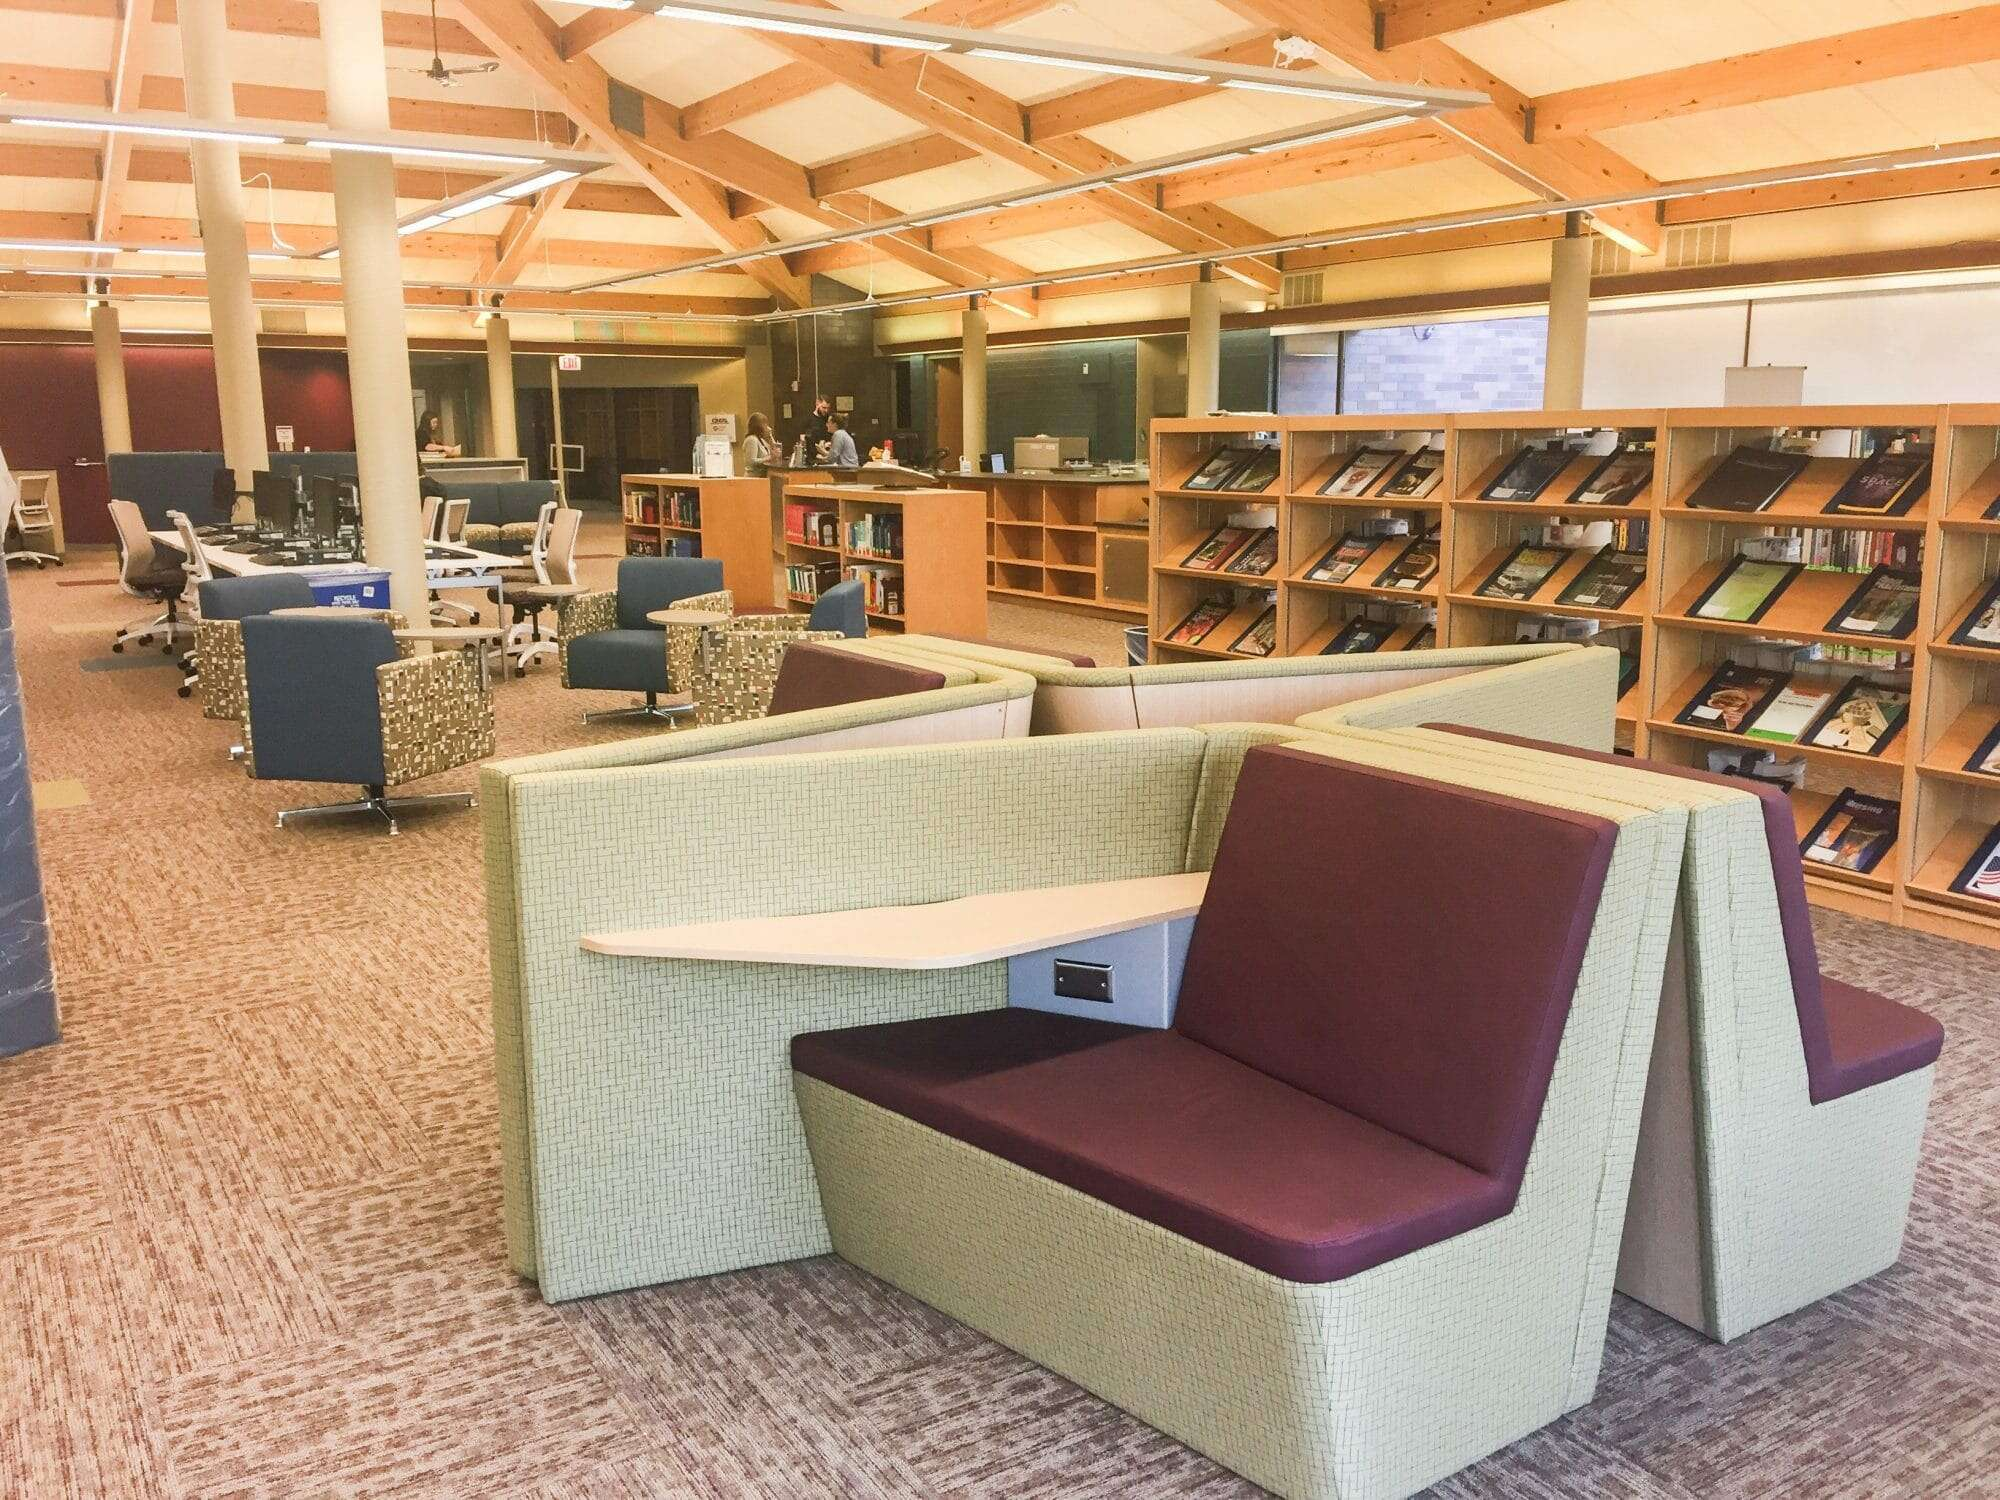 Modern Classroom Seating Arrangement ~ Step inside the modern classroom systems furniture